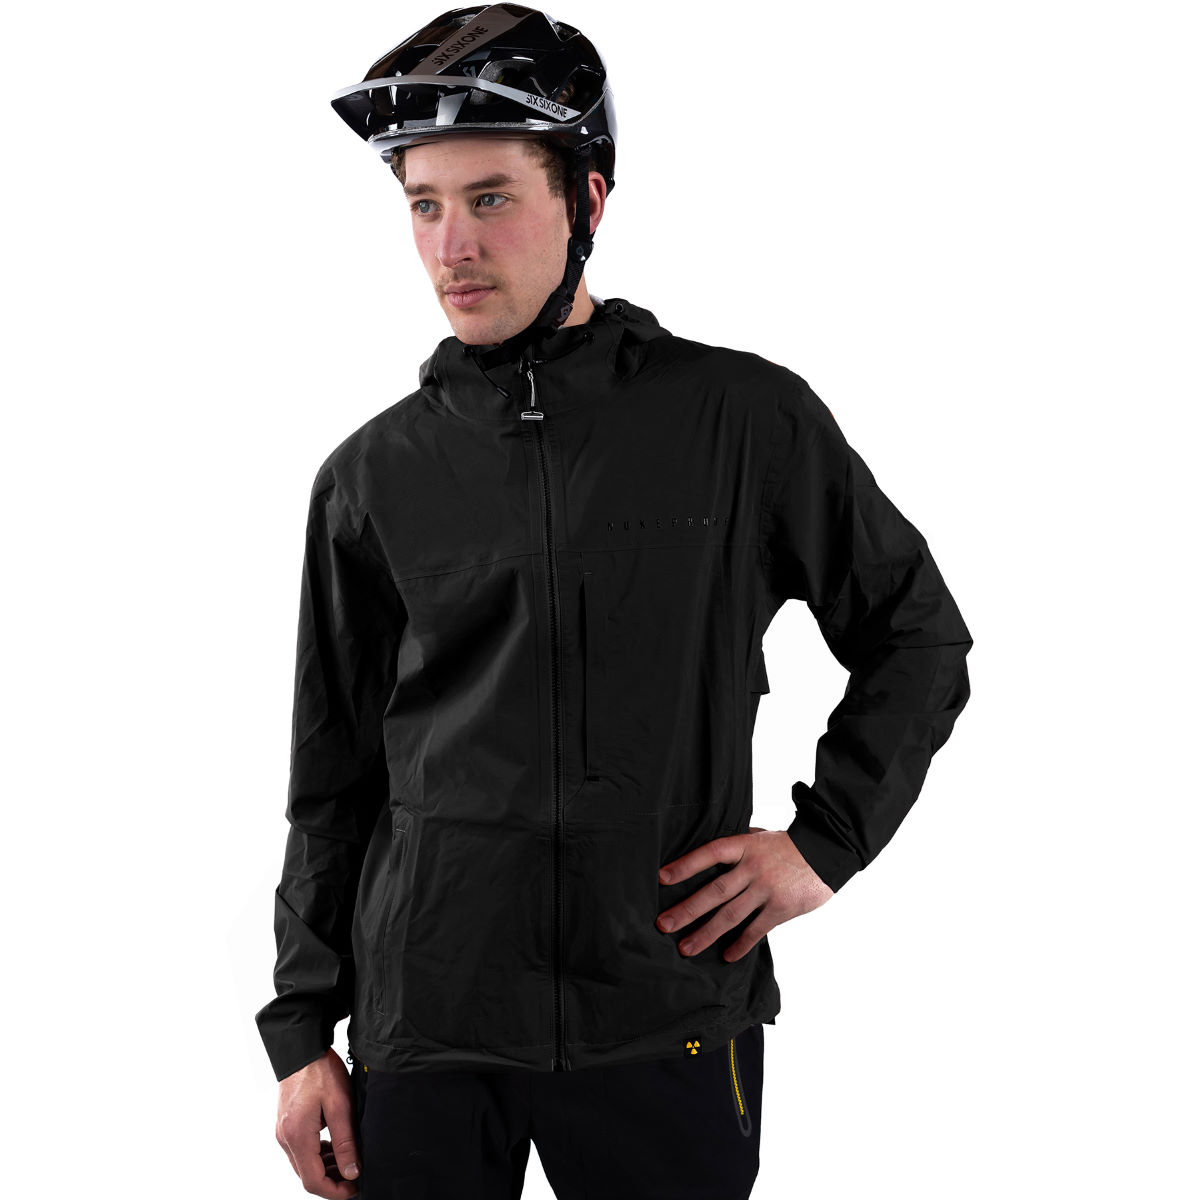 Nukeproof Nukeproof Nirvana Packable Jacket   Jackets